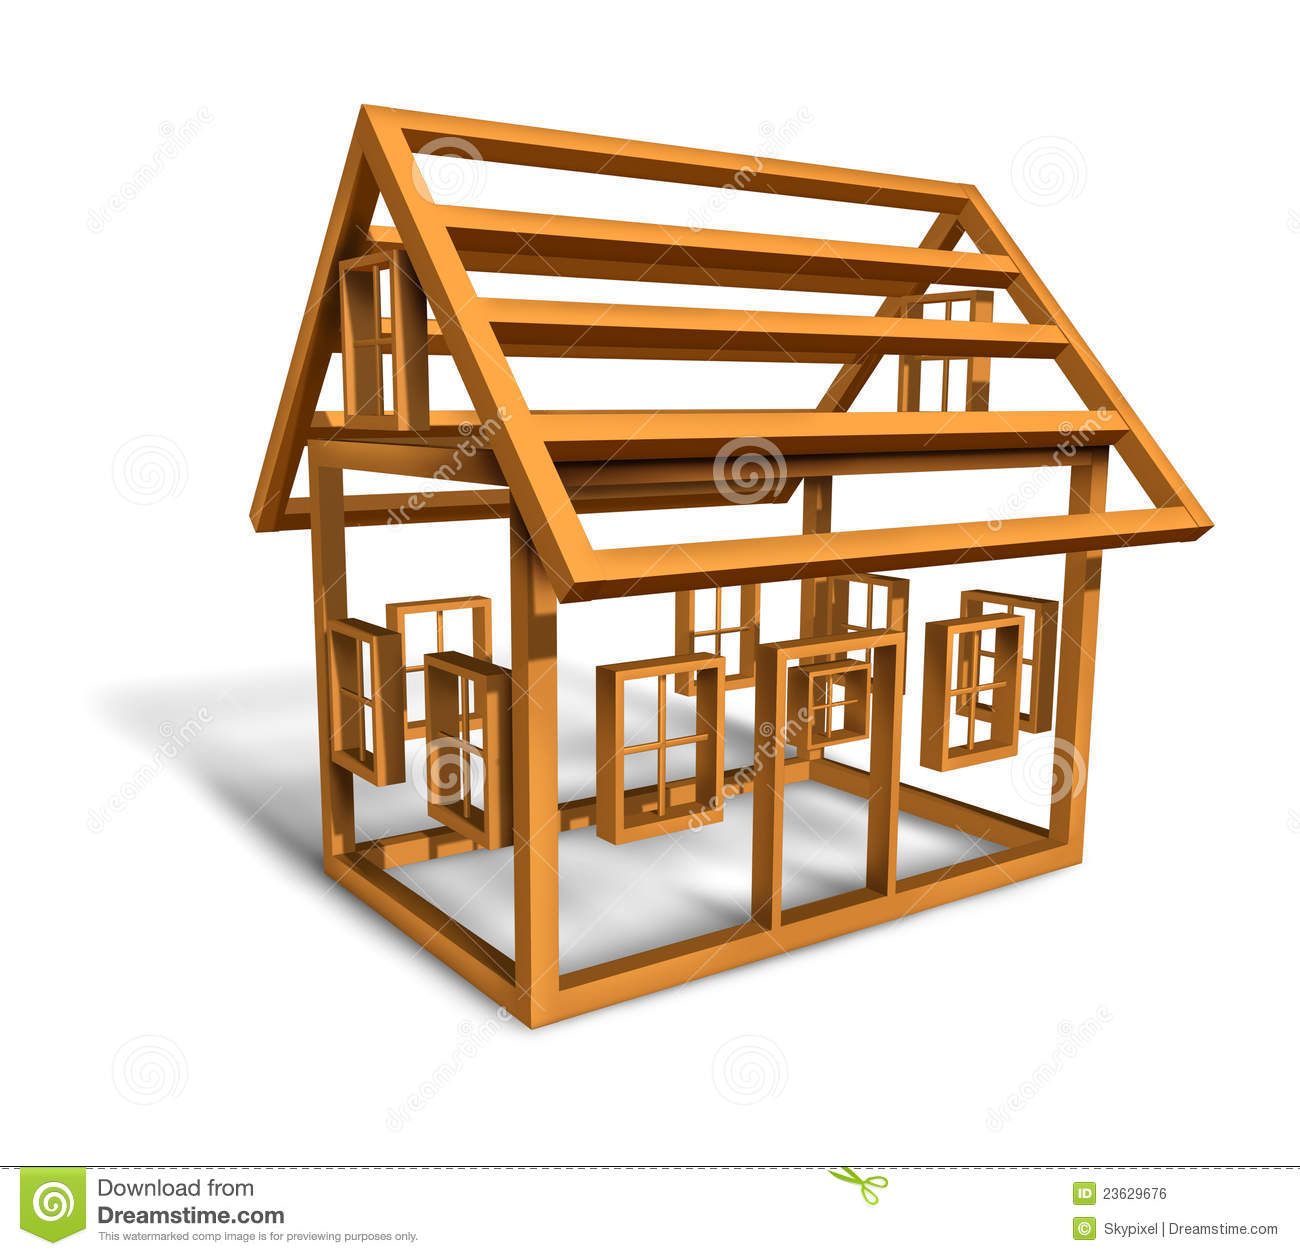 House Construction Clipart.